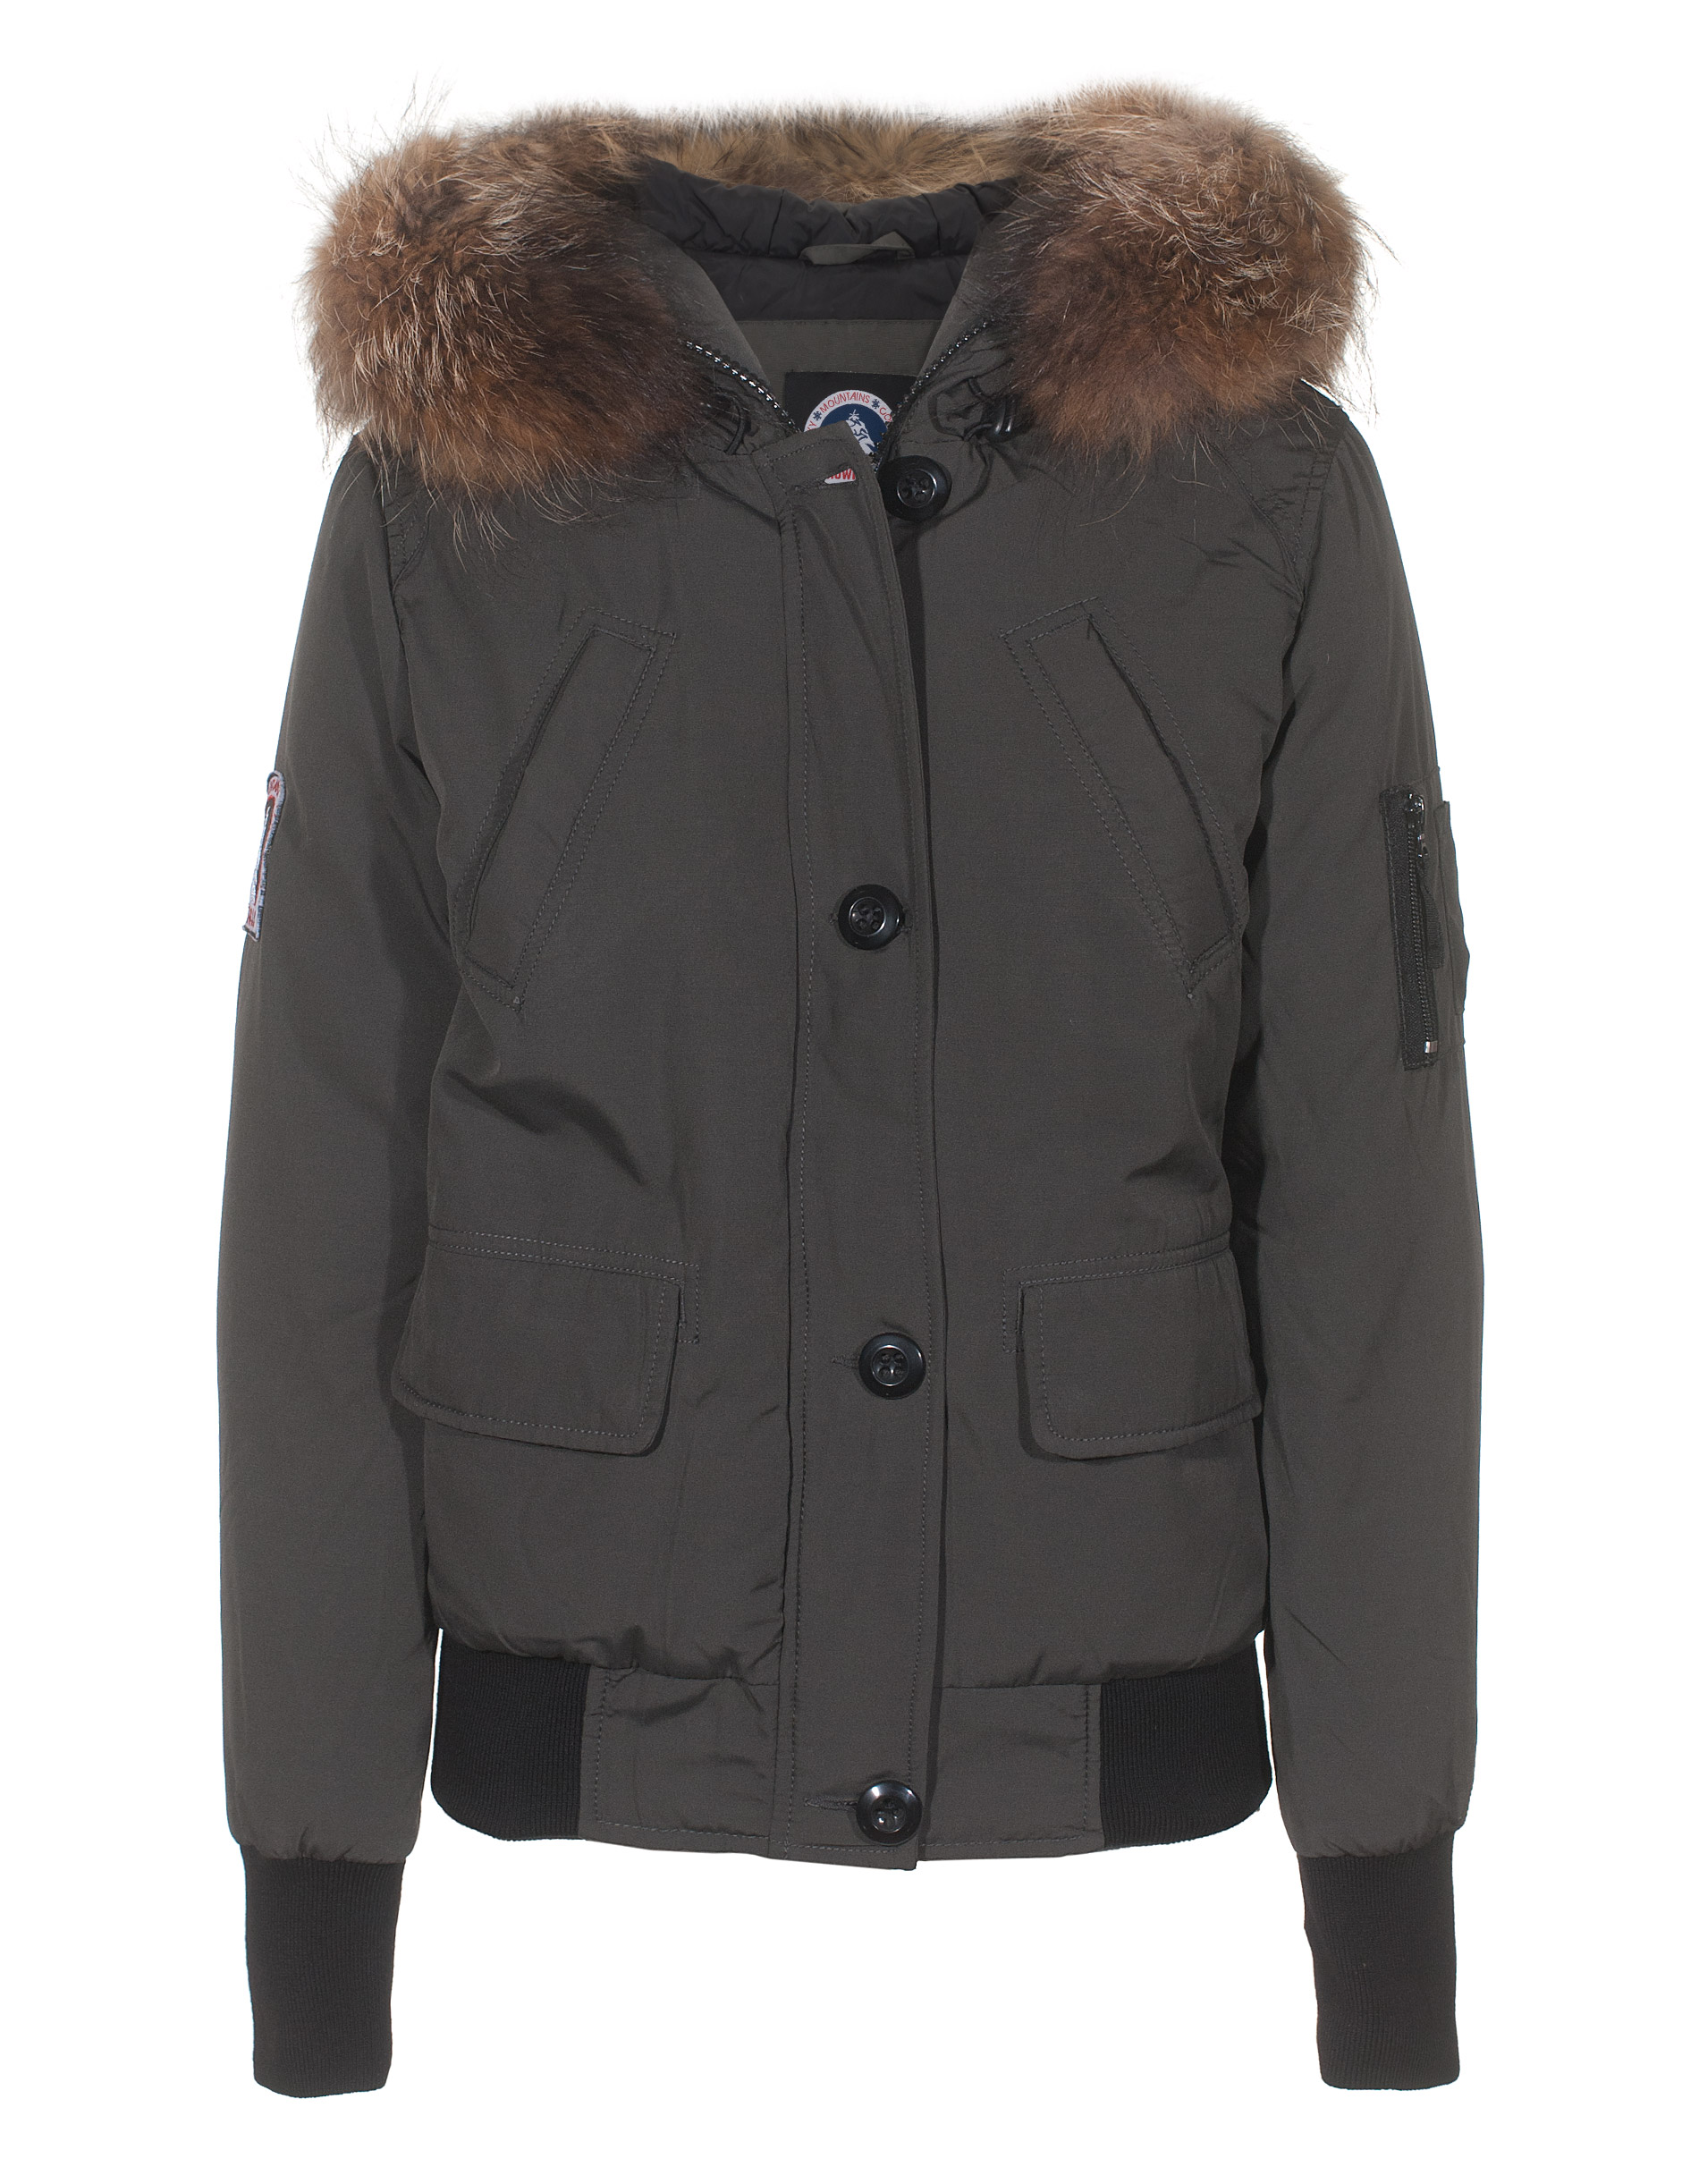 snowmass adventure grey down jacket with furred collar jackets coats